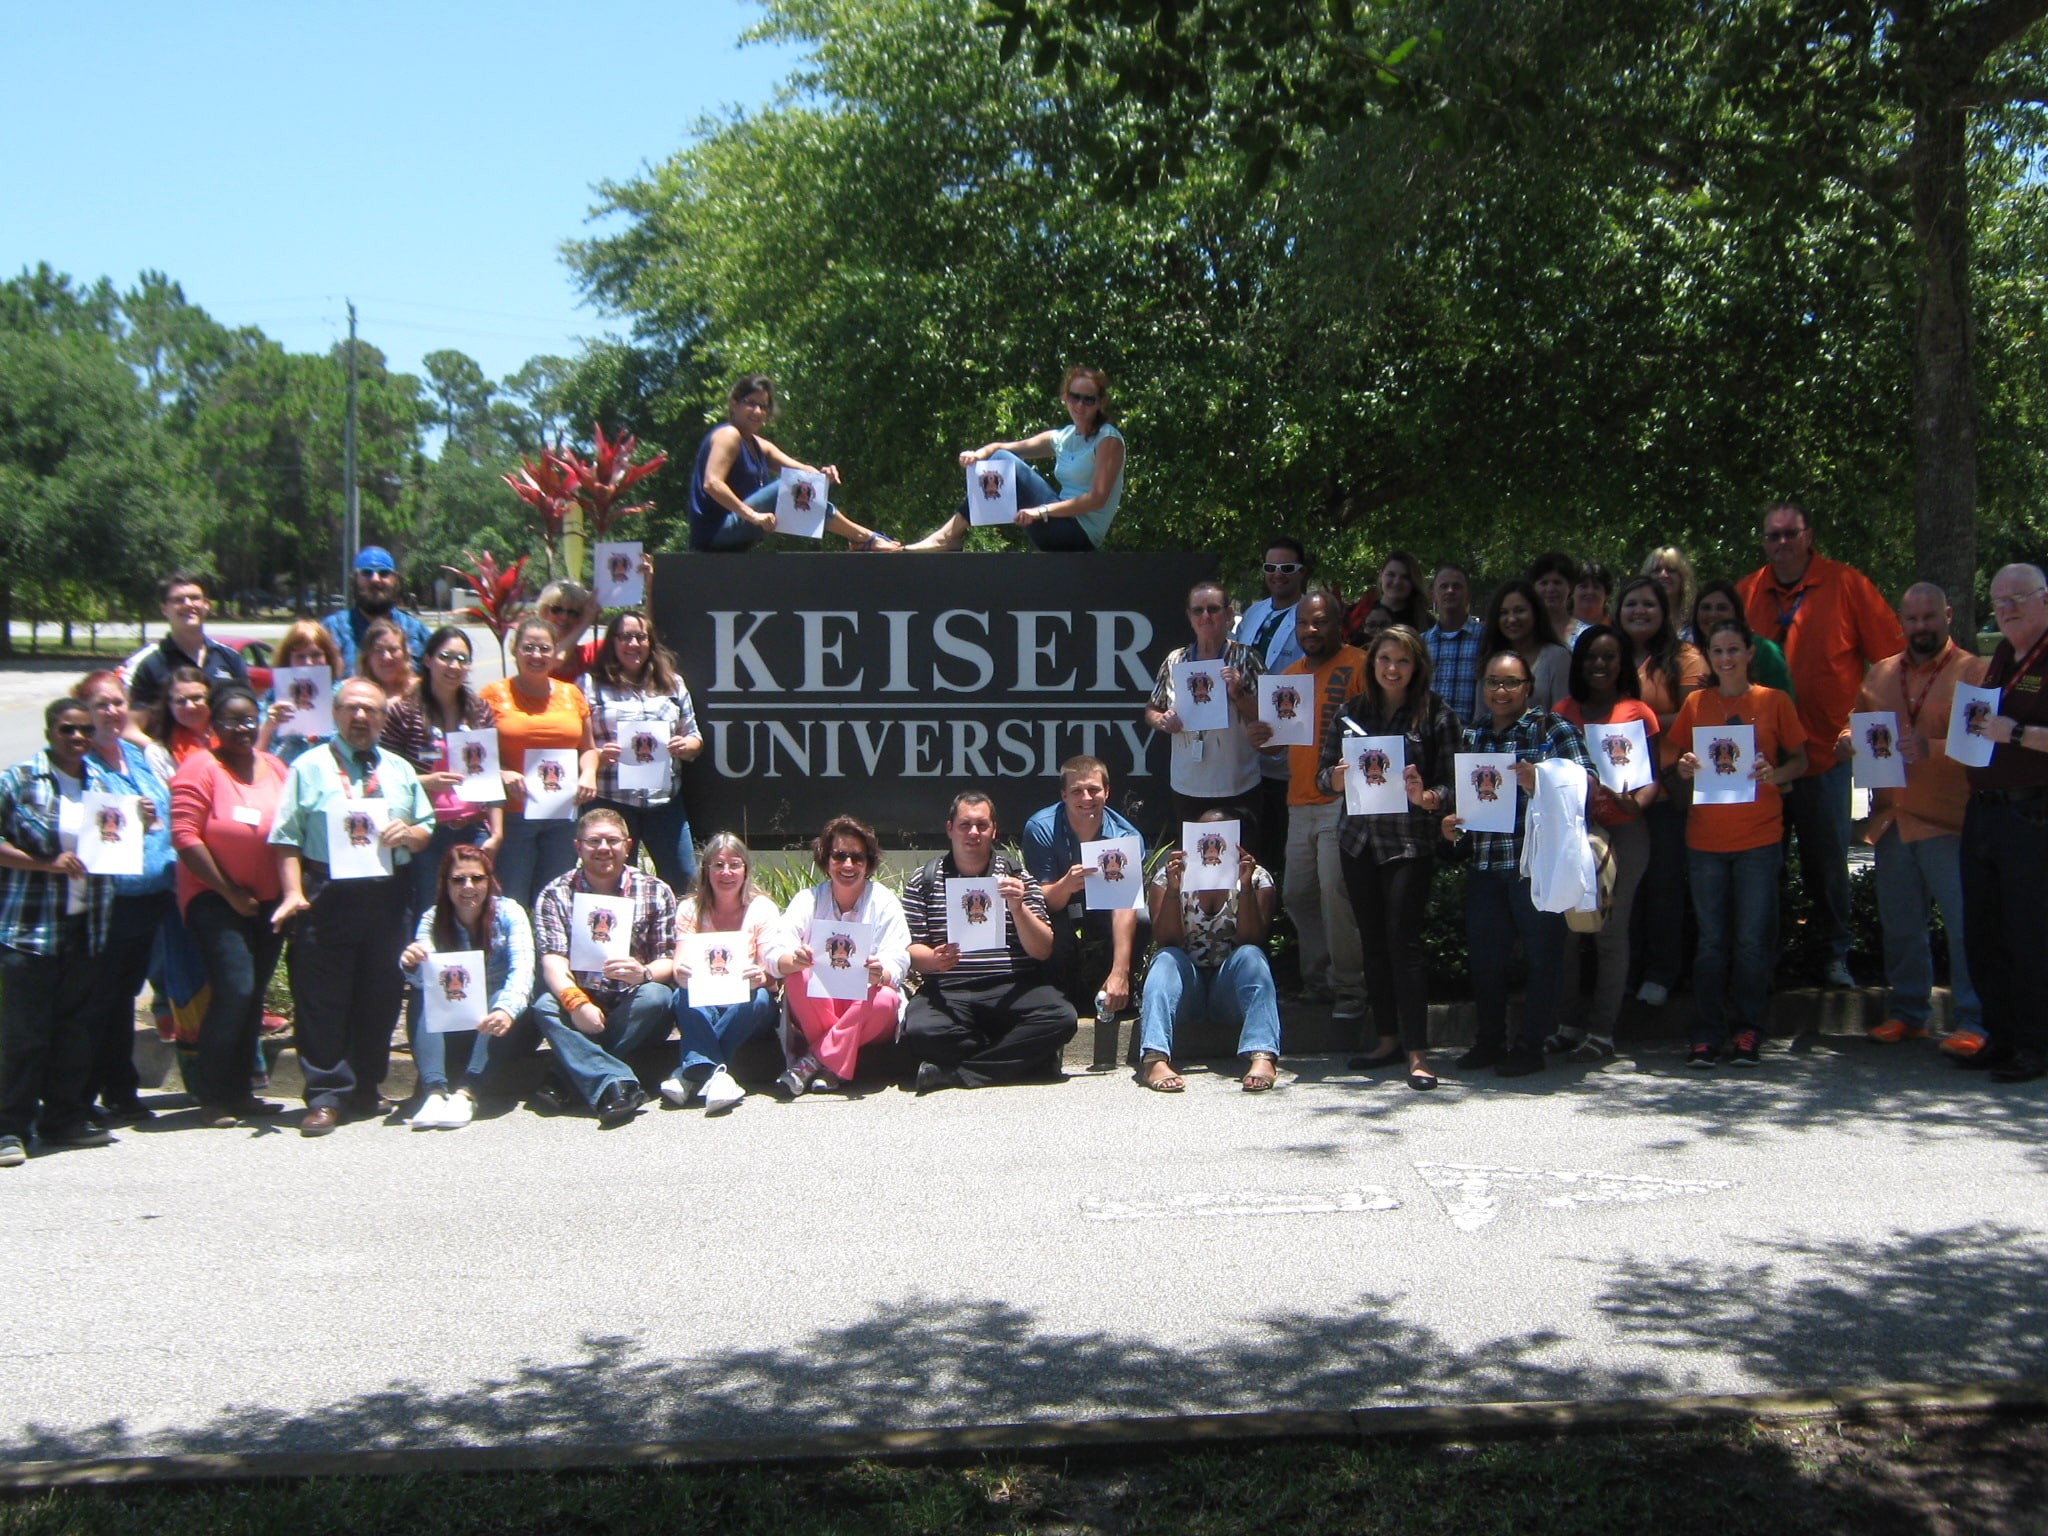 Keiser University Daytona Beach Joins Brayden's Army